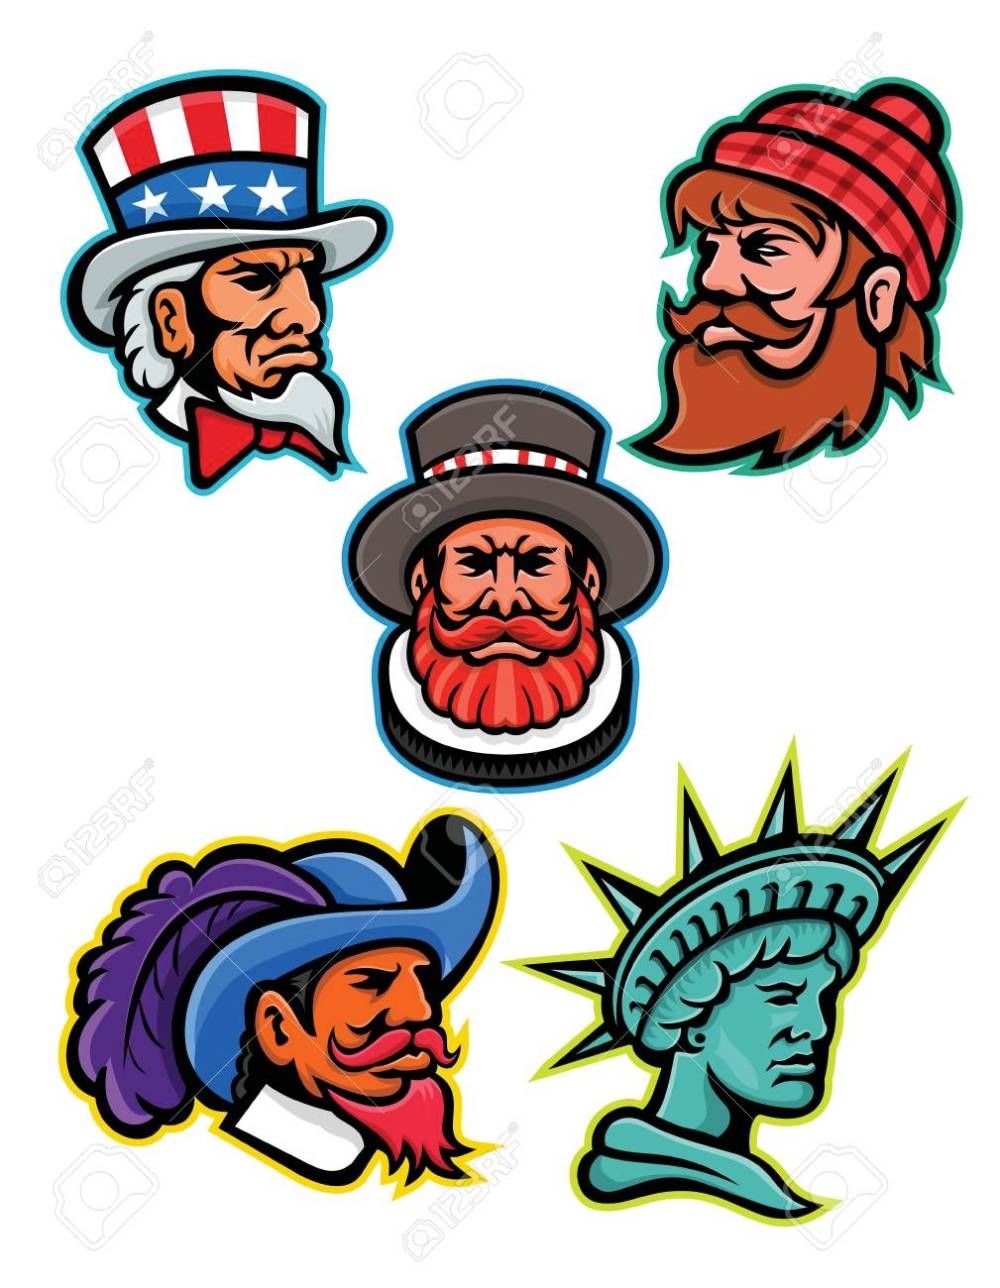 medium resolution of mascot icon illustration set of heads of american and british mascots such as uncle sam paul bunyan lumberjack beefeater or yeoman cavalier or musketeer